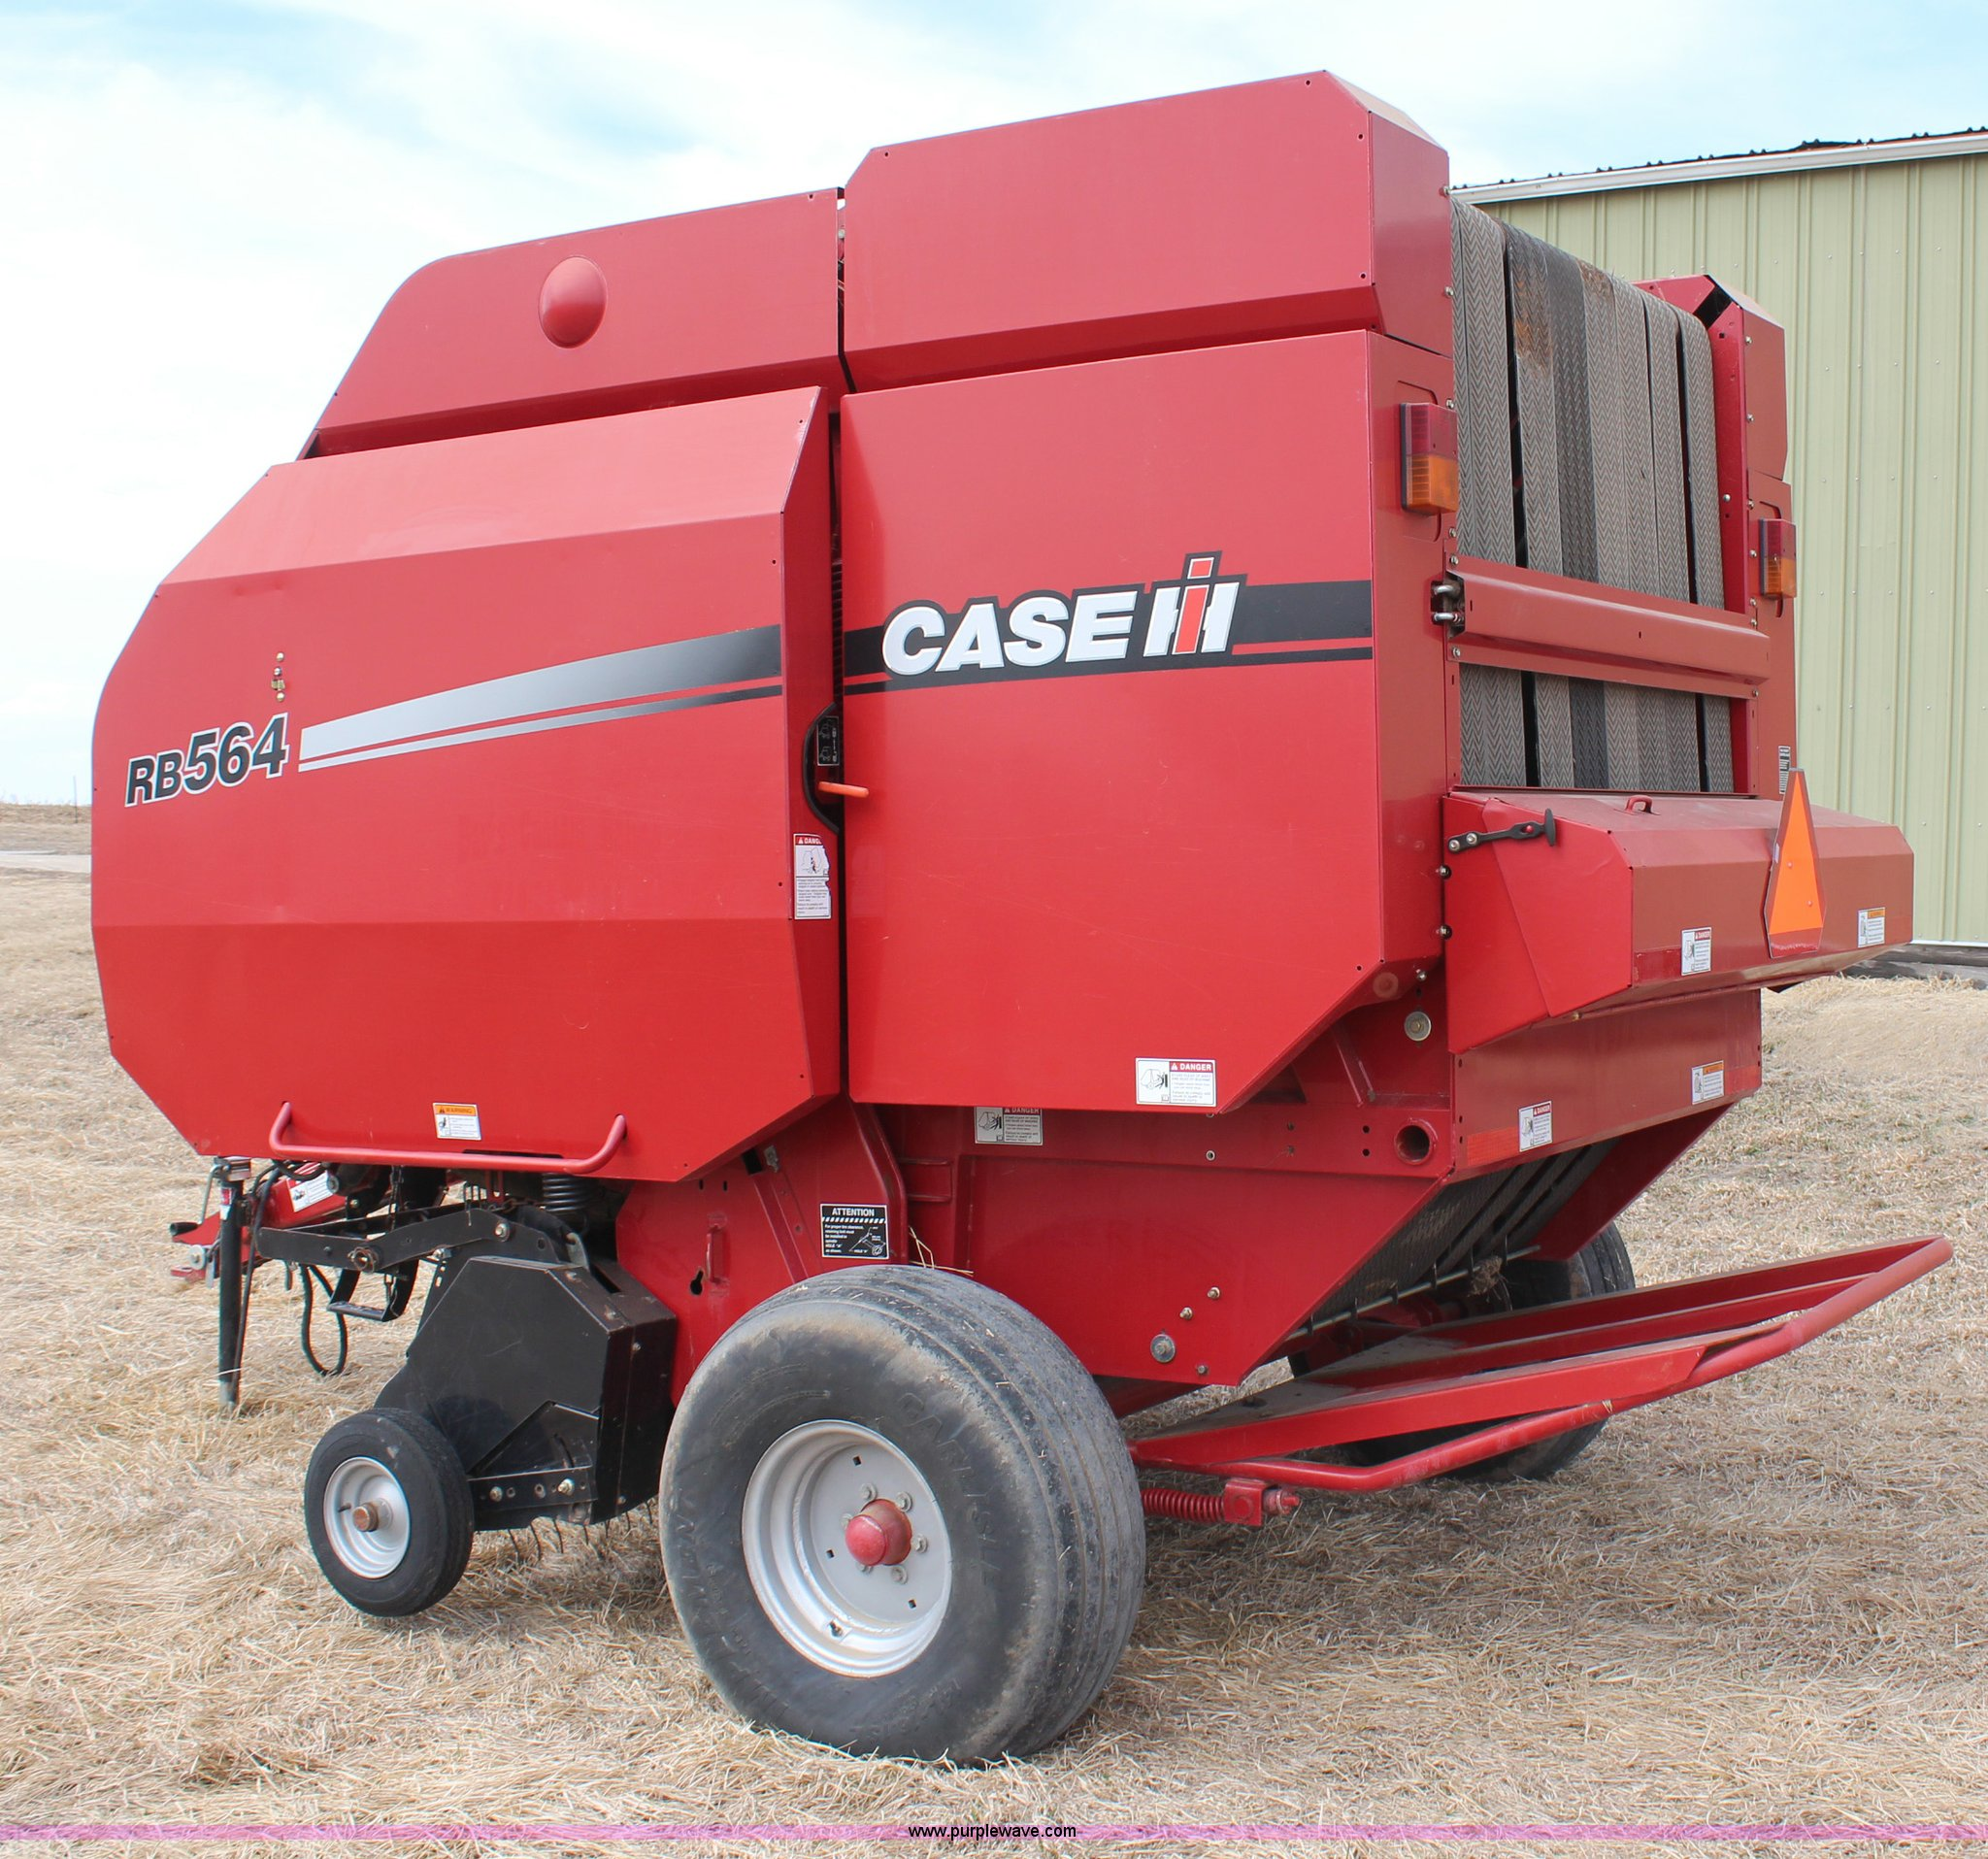 2008 Case IH RB564 round baler | Item H1476 | SOLD! April 9